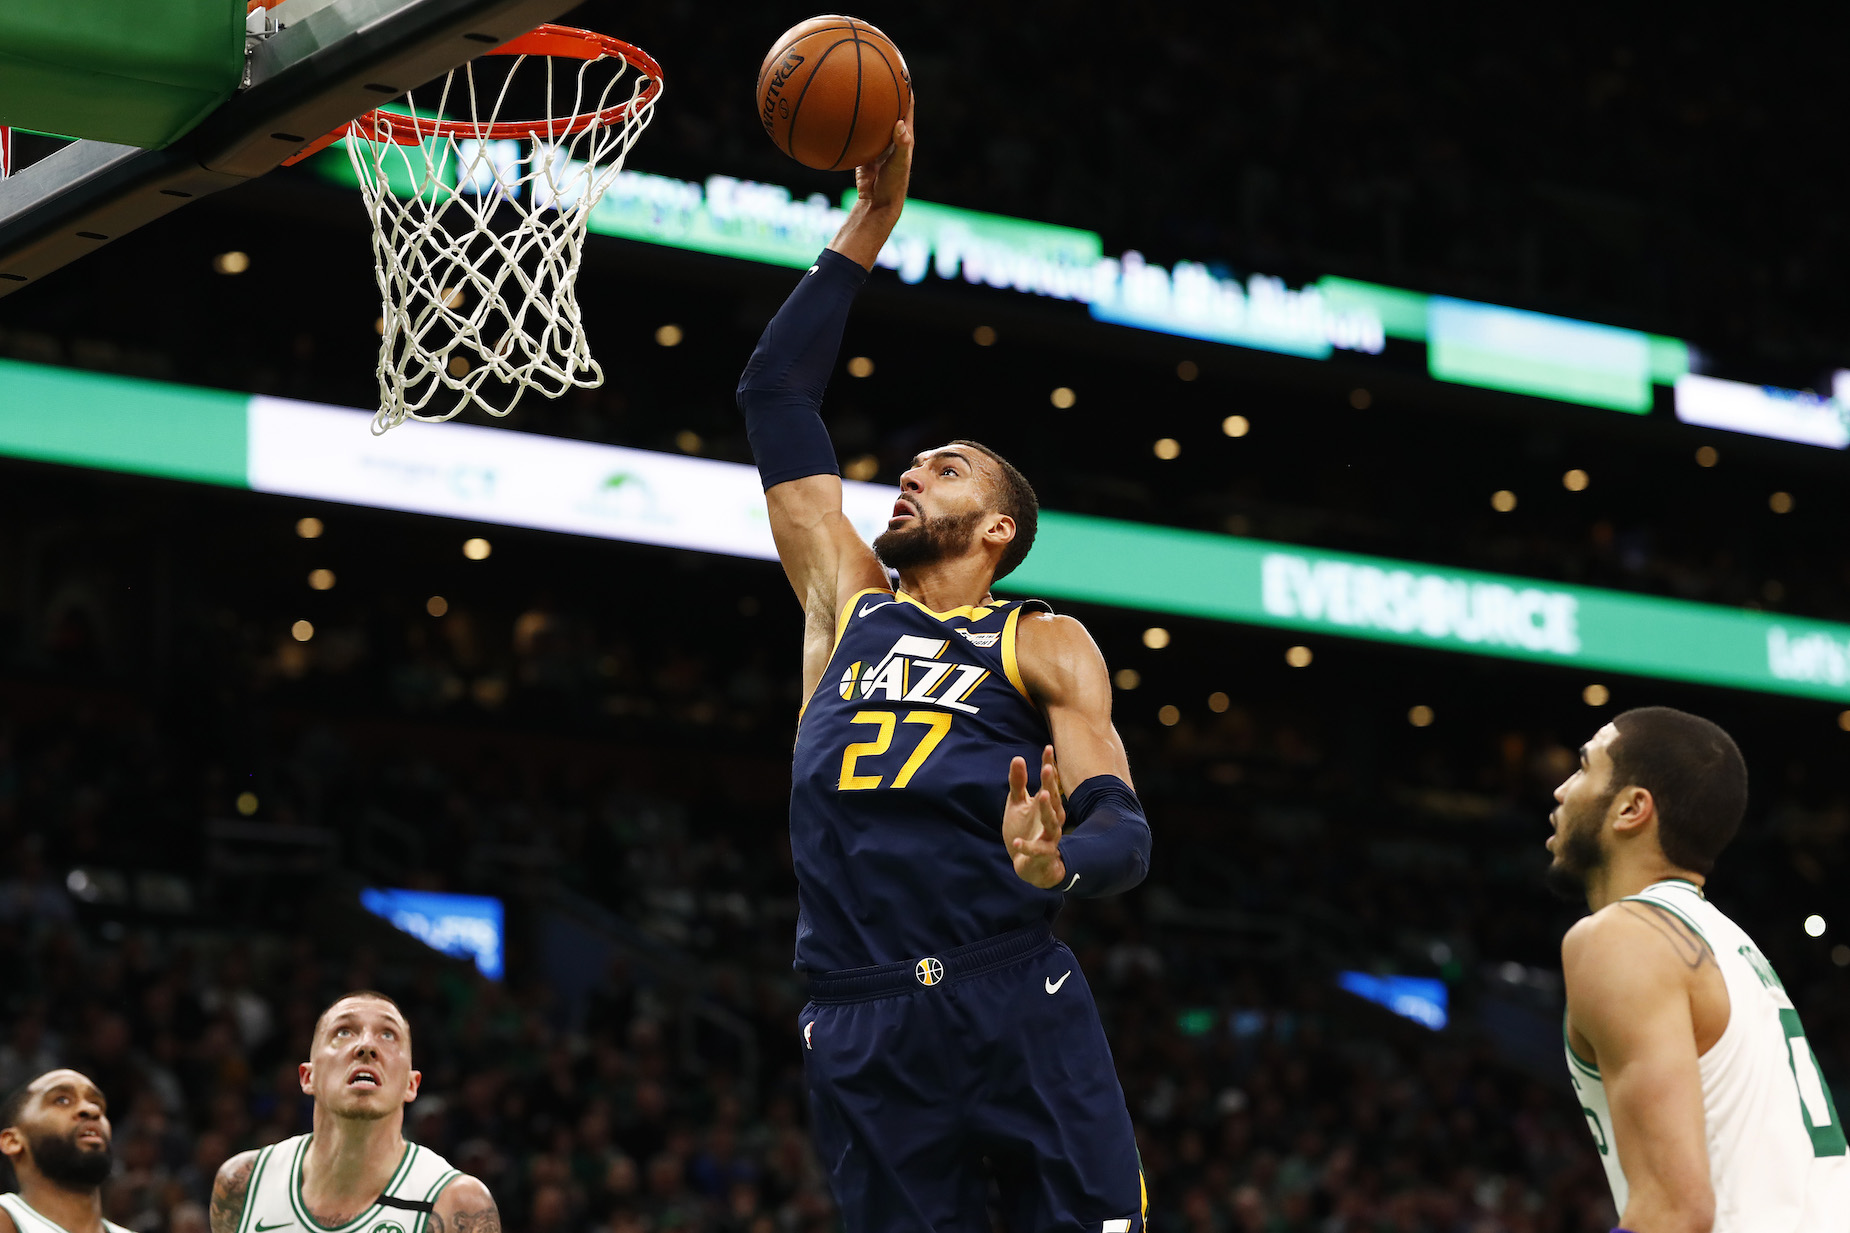 Rudy Gobert's COVID-19 diagnosis could have saved countless lives.